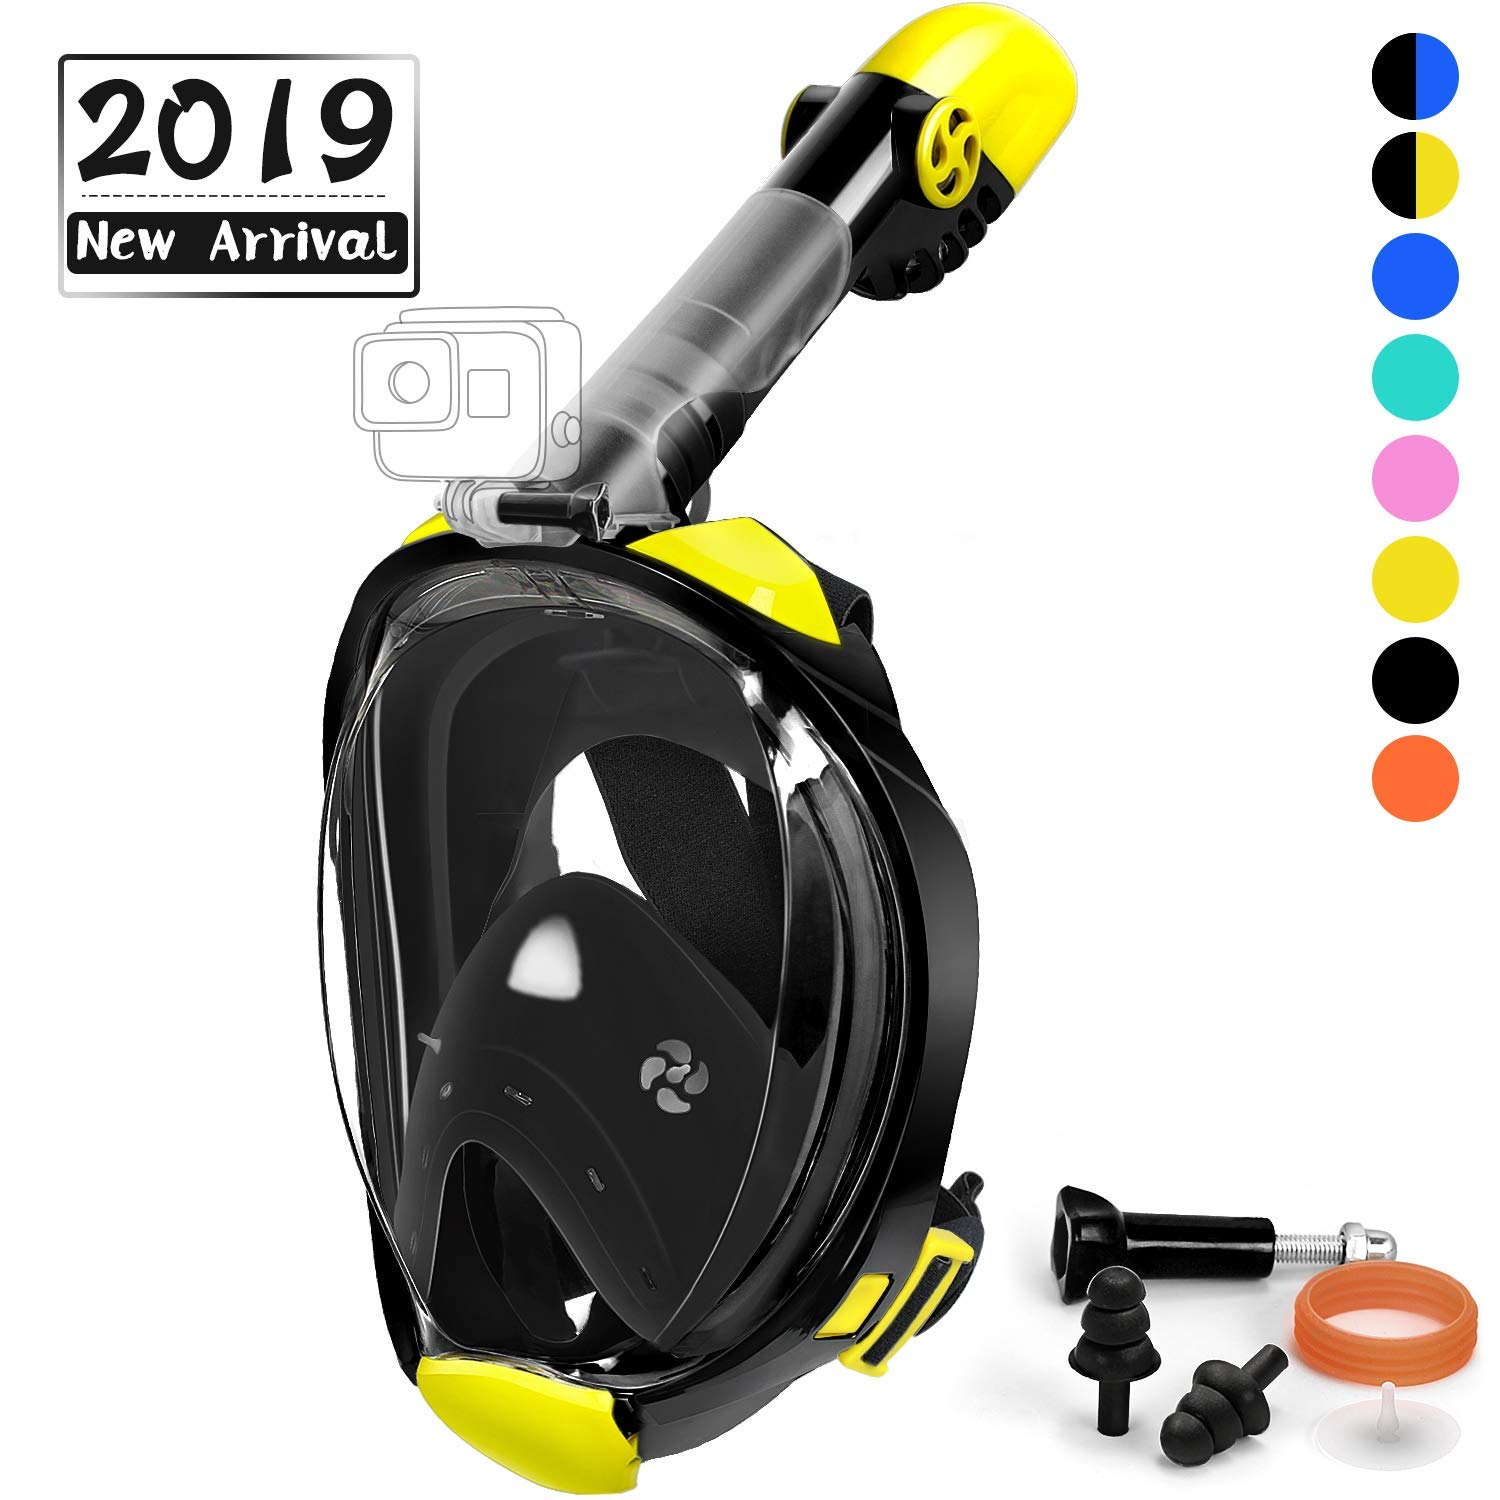 OUSPT Full Face Snorkel Mask, Snorkeling Mask with Detachable Camera Mount, Panoramic 180° View Upgraded Dive Mask with Newest Breathing System, Dry Top Set Anti-Fog Anti-Leak (Black-2, L/XL) by OUSPT